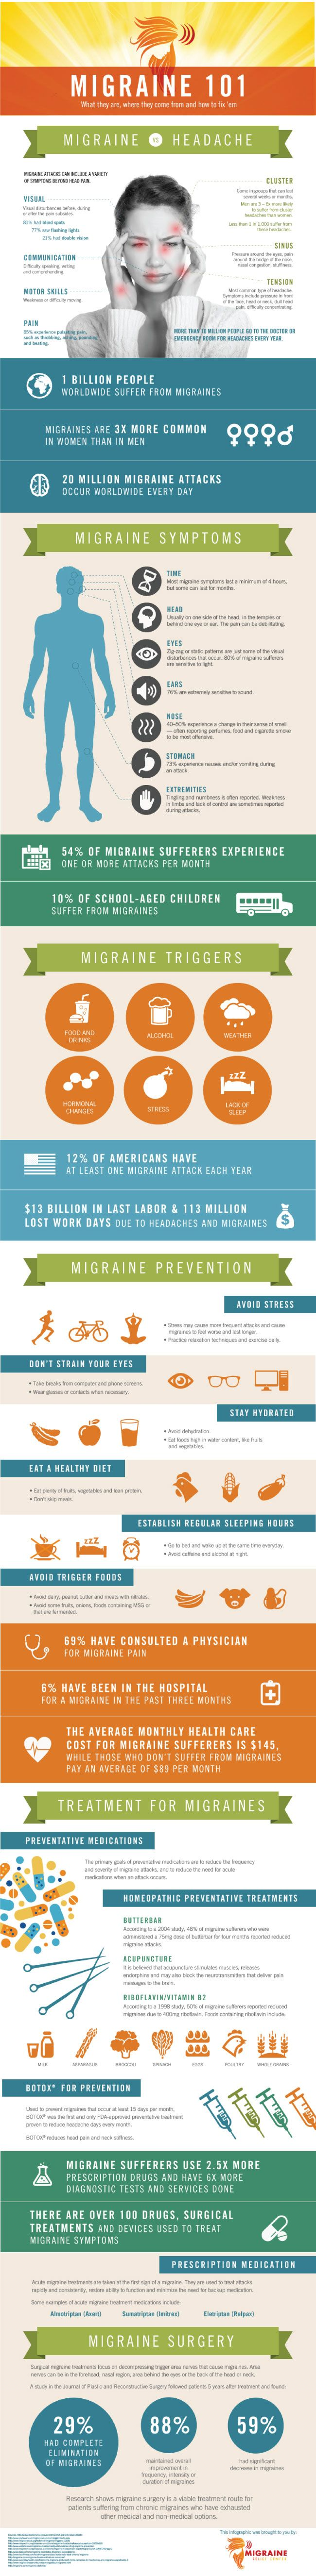 Migraine 101: What They Are, Where They Come from and How to Fix 'em